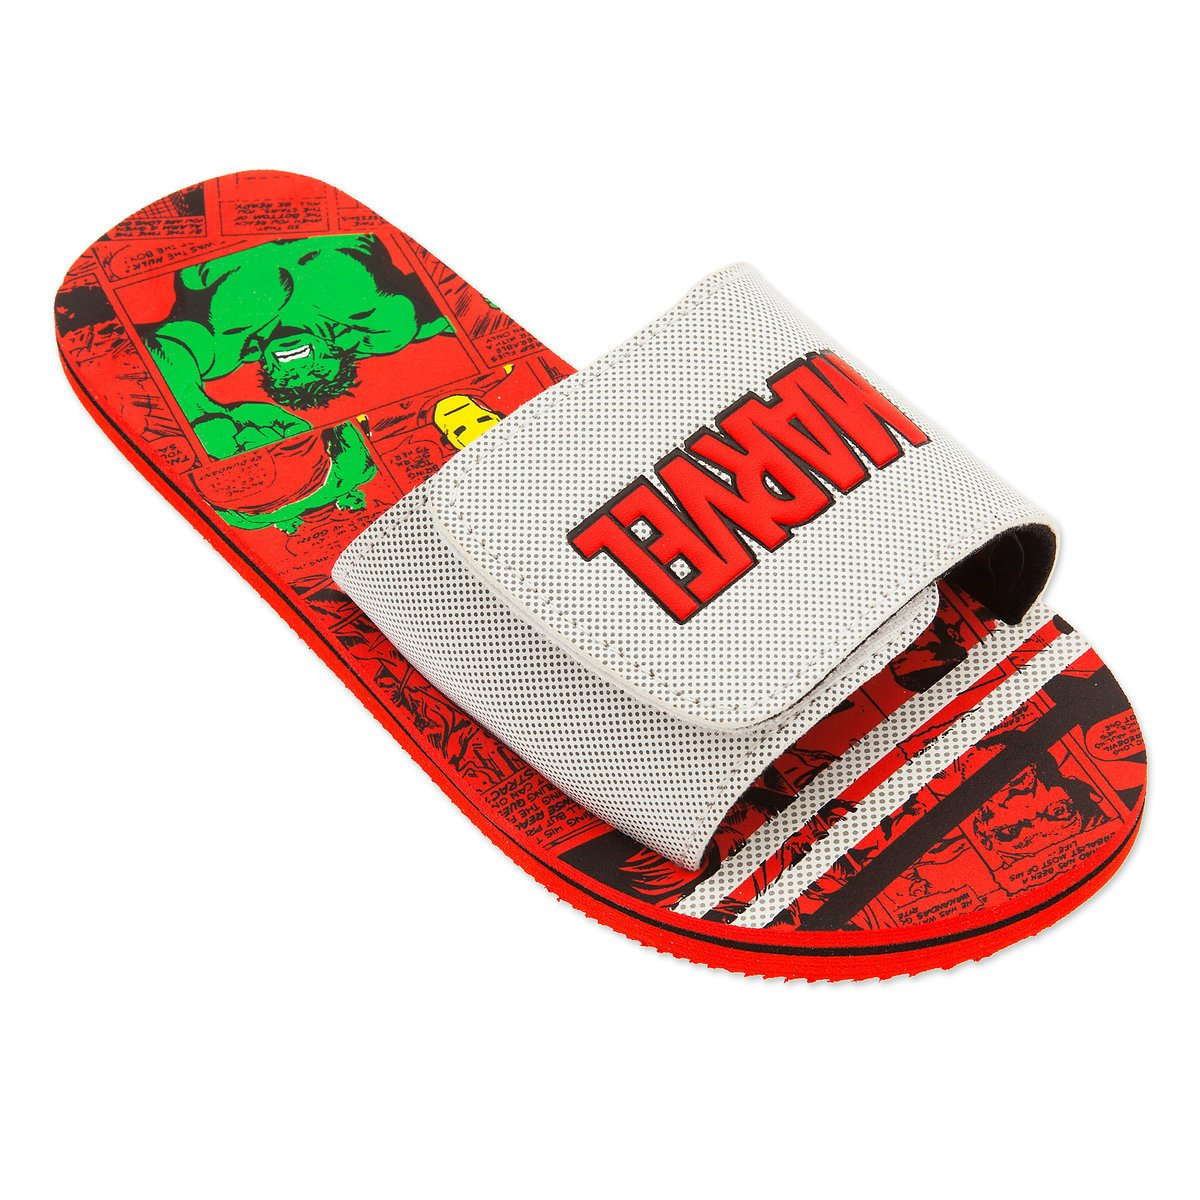 Shop Disney Marvel Avengers Comic Sandals for Kids - Summer Beach